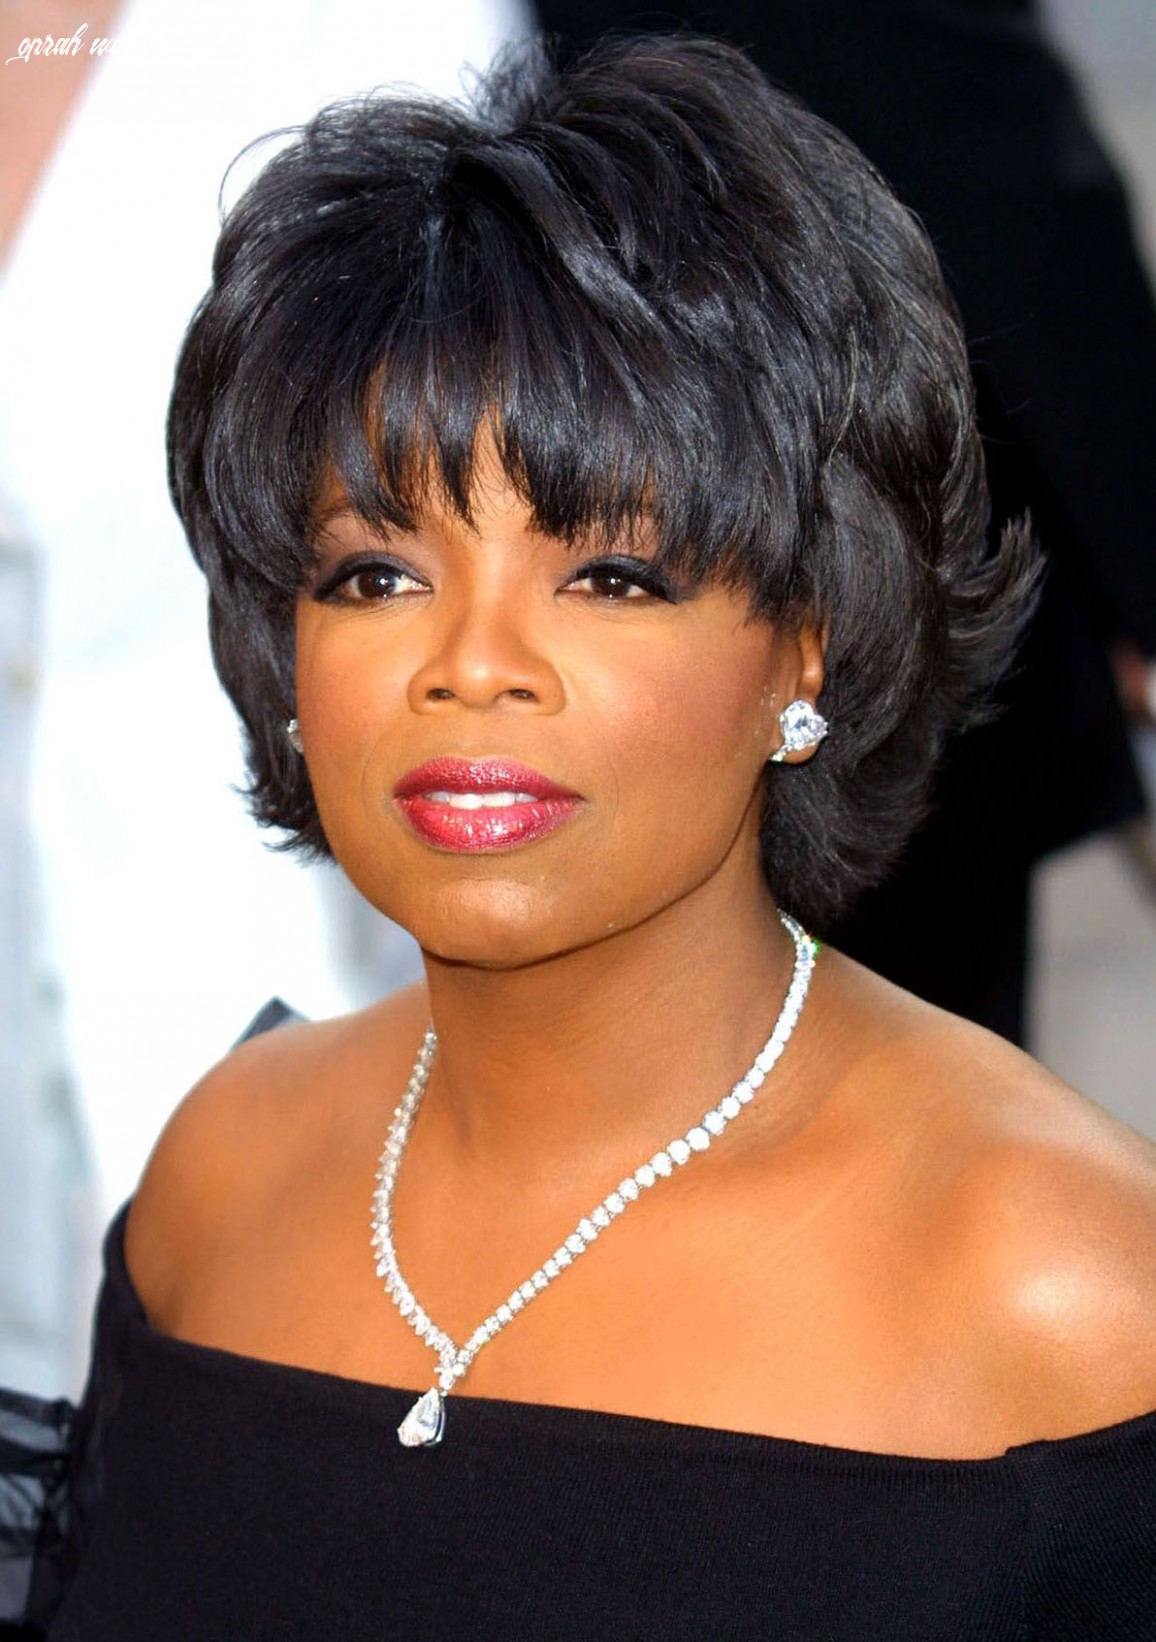 Farewell to oprah and to hairstyles of the past   top hairstyles